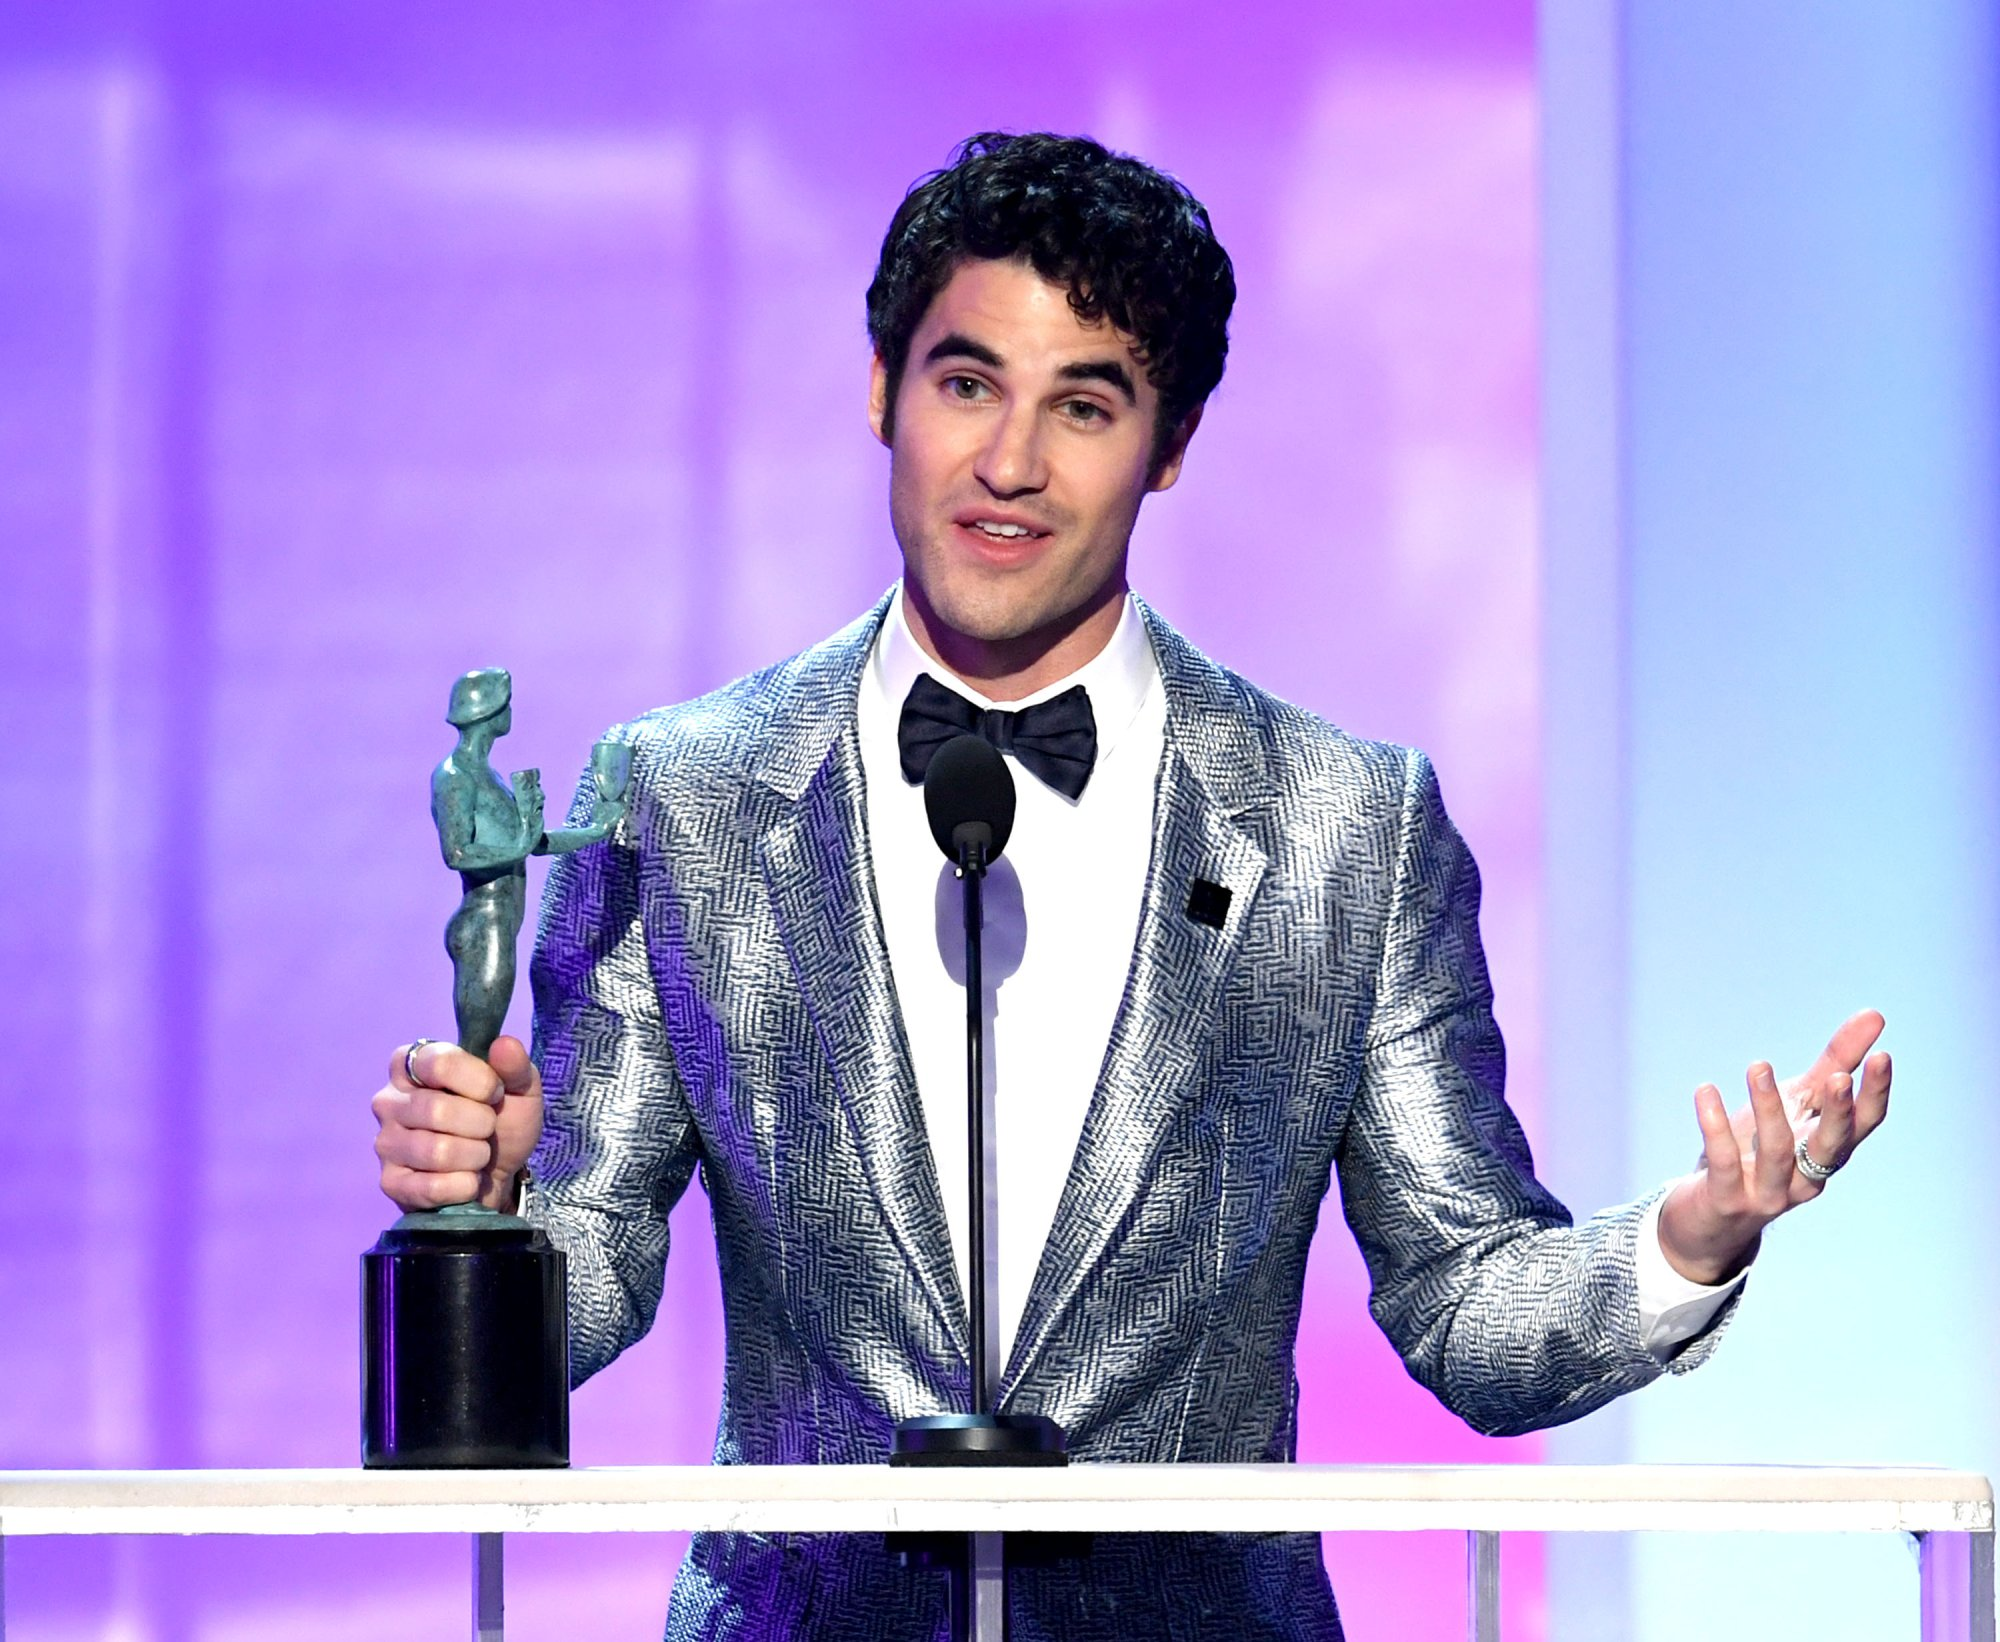 LOS ANGELES, CALIFORNIA - JANUARY 27: Darren Criss accepts Outstanding Performance by a Male Actor in a Television Movie or Miniseries onstage during the 25th Annual Screen Actors Guild Awards at The Shrine Auditorium on January 27, 2019 in Los Angeles, California. (Photo by Kevin Winter/Getty Images for Turner)